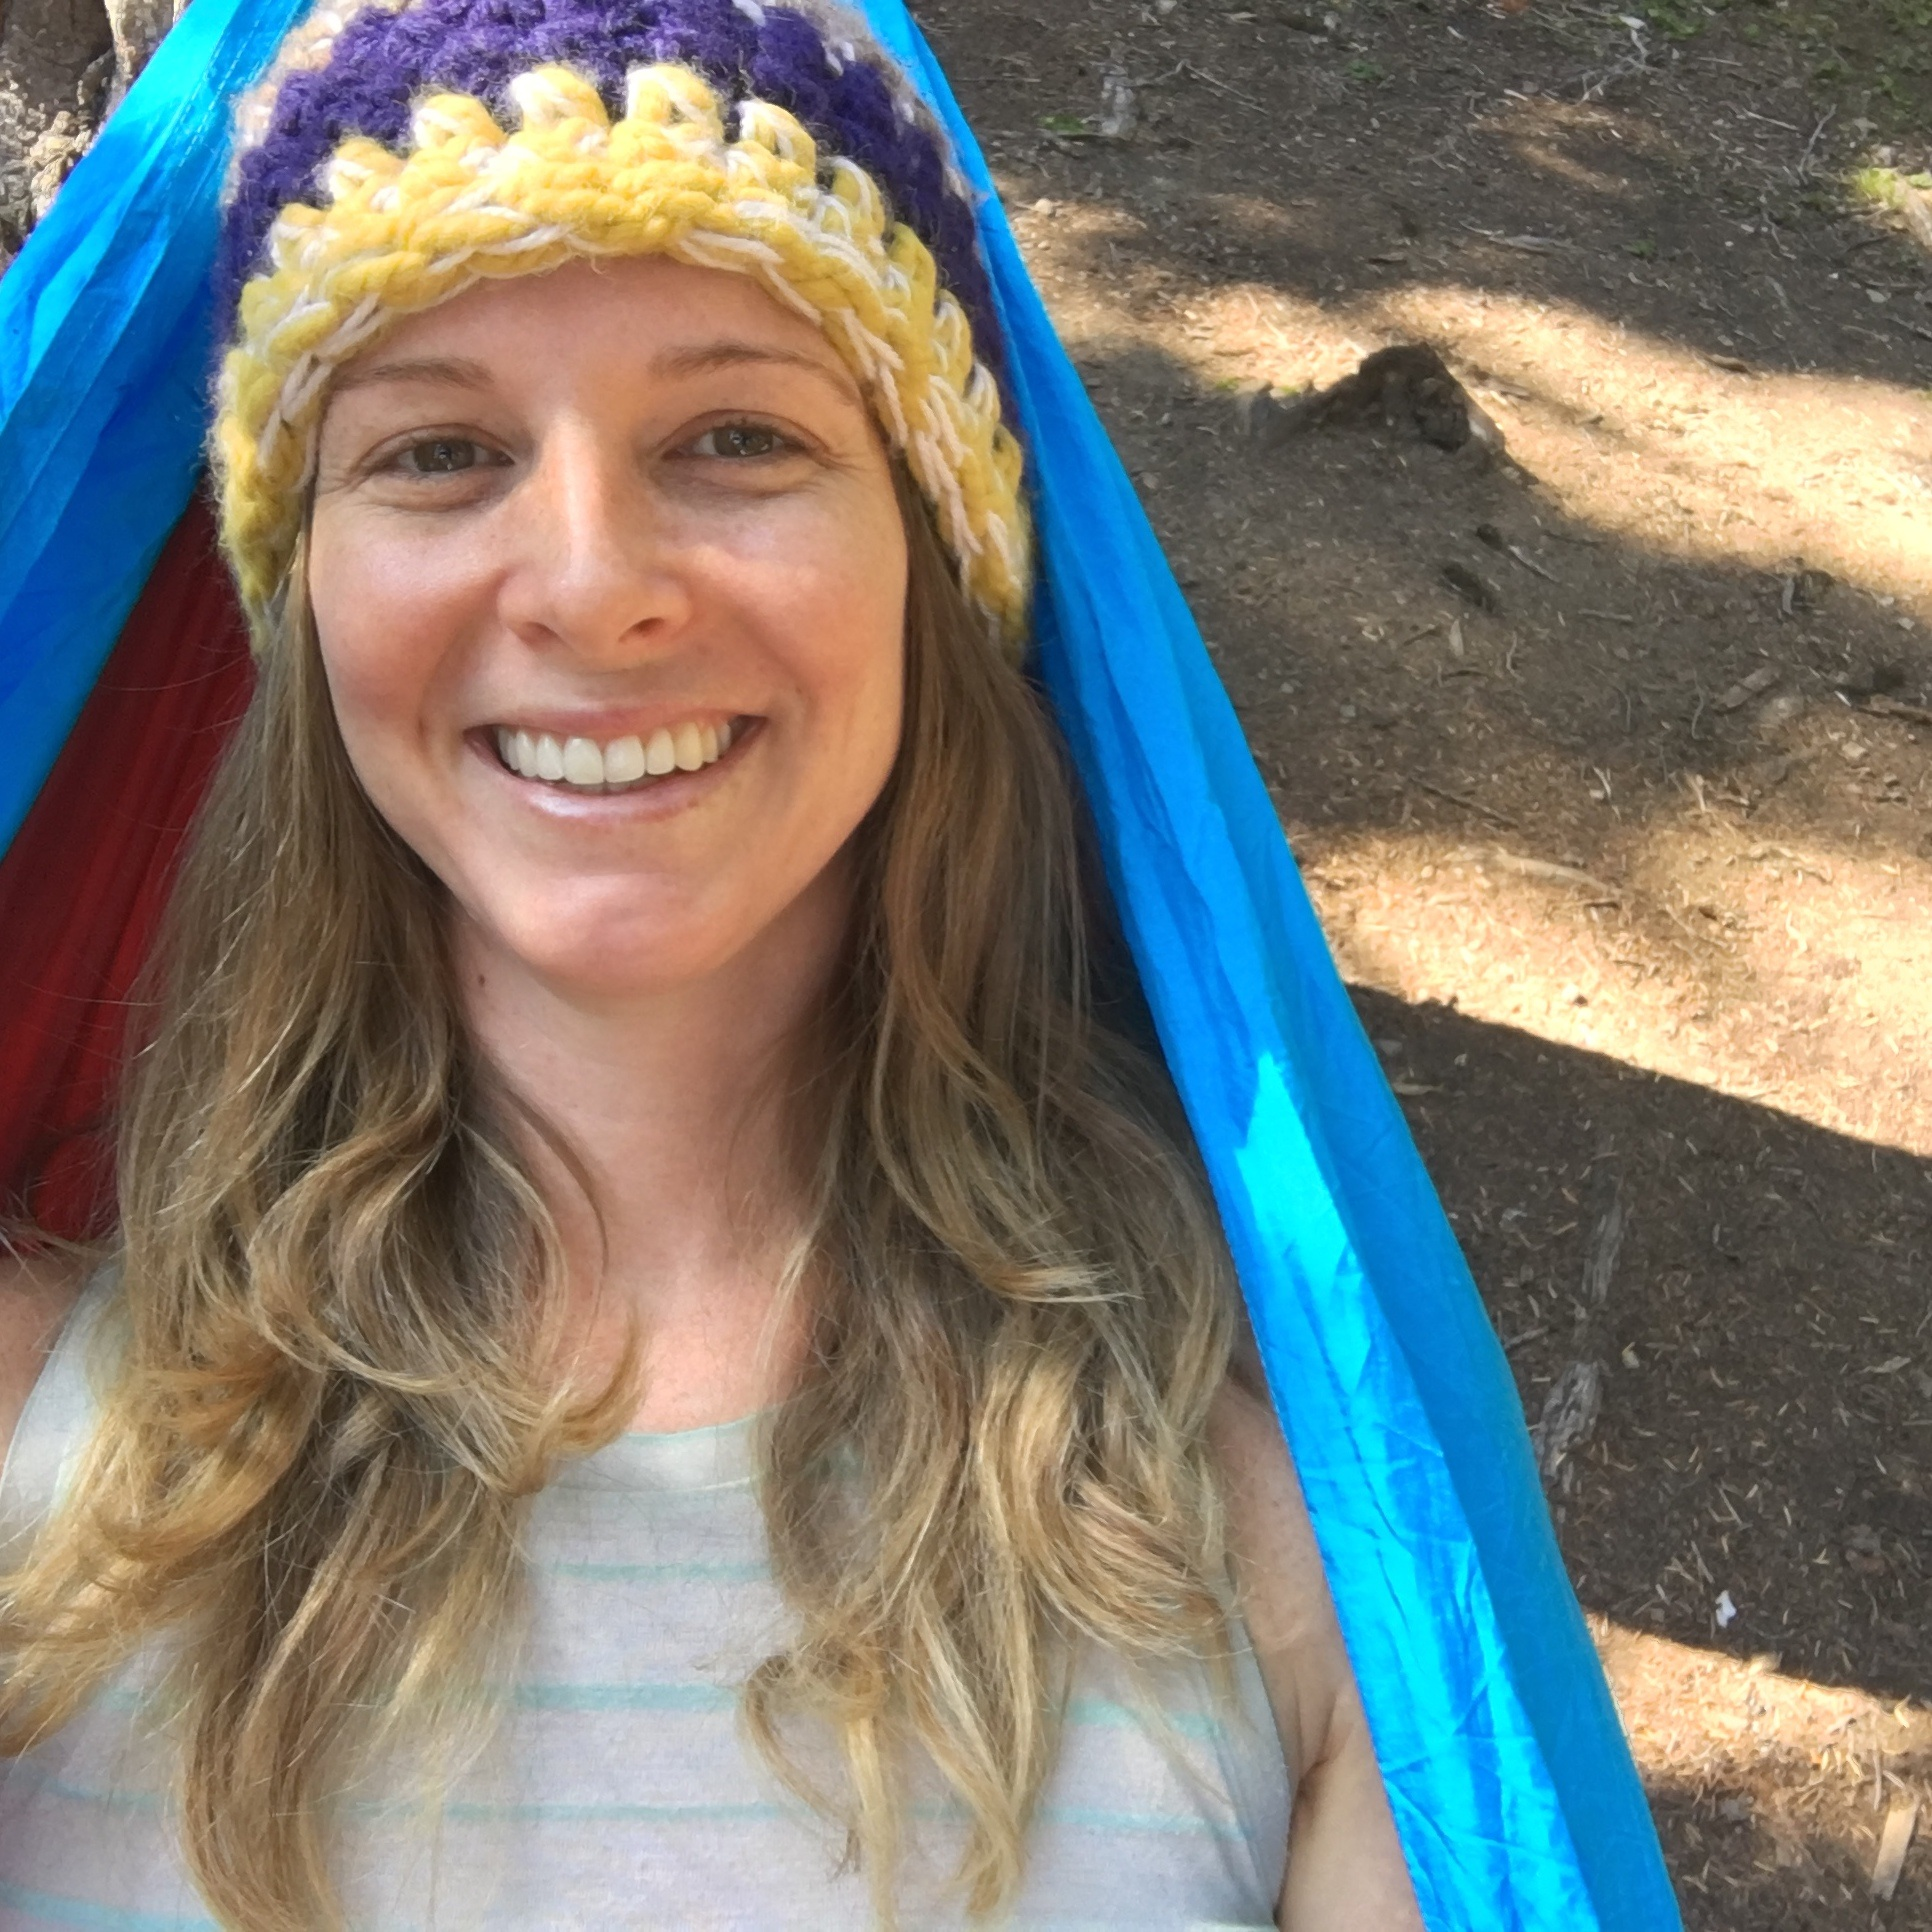 Caroline - Caroline went on her first backpacking trip in 2013, and was so drawn to the wilderness she decided to hike 2,000 miles on the Pacific Crest Trail the following summer. After more than a decade of an intensely stressful urban life, she discovered how much she needed time in wild places, and backpacking totally changed her life. Eat Hike Love was born of Caroline's desire to share the laughter, excitement, adventure, and deep, soul-reviving rewards of time spent in the wilderness with as many others as possible. She lives in the Columbia River Gorge between Mount Hood and Mount Adams, and has extensively explored the wilderness areas of Washington, Oregon, and California. Currently under contract with Moon Travel Guides, she is researching and writing Drive & Hike: Pacific Crest Trail, the ultimate guide to the best day hikes, scenic drives, restaurants, breweries, hotels, campgrounds, and things to do along the PCT (publish date 2020).Caroline has a master's degree in nutrition from National University of Natural Medicine, and a passion for cooking & preparing foods that satisfy on every level: physical, emotional, social, and spiritual. She personally prepares every meal and snack for each Eat Hike Love retreat. She is also a yoga teacher with a 200-hour certification from YoYoYogi.